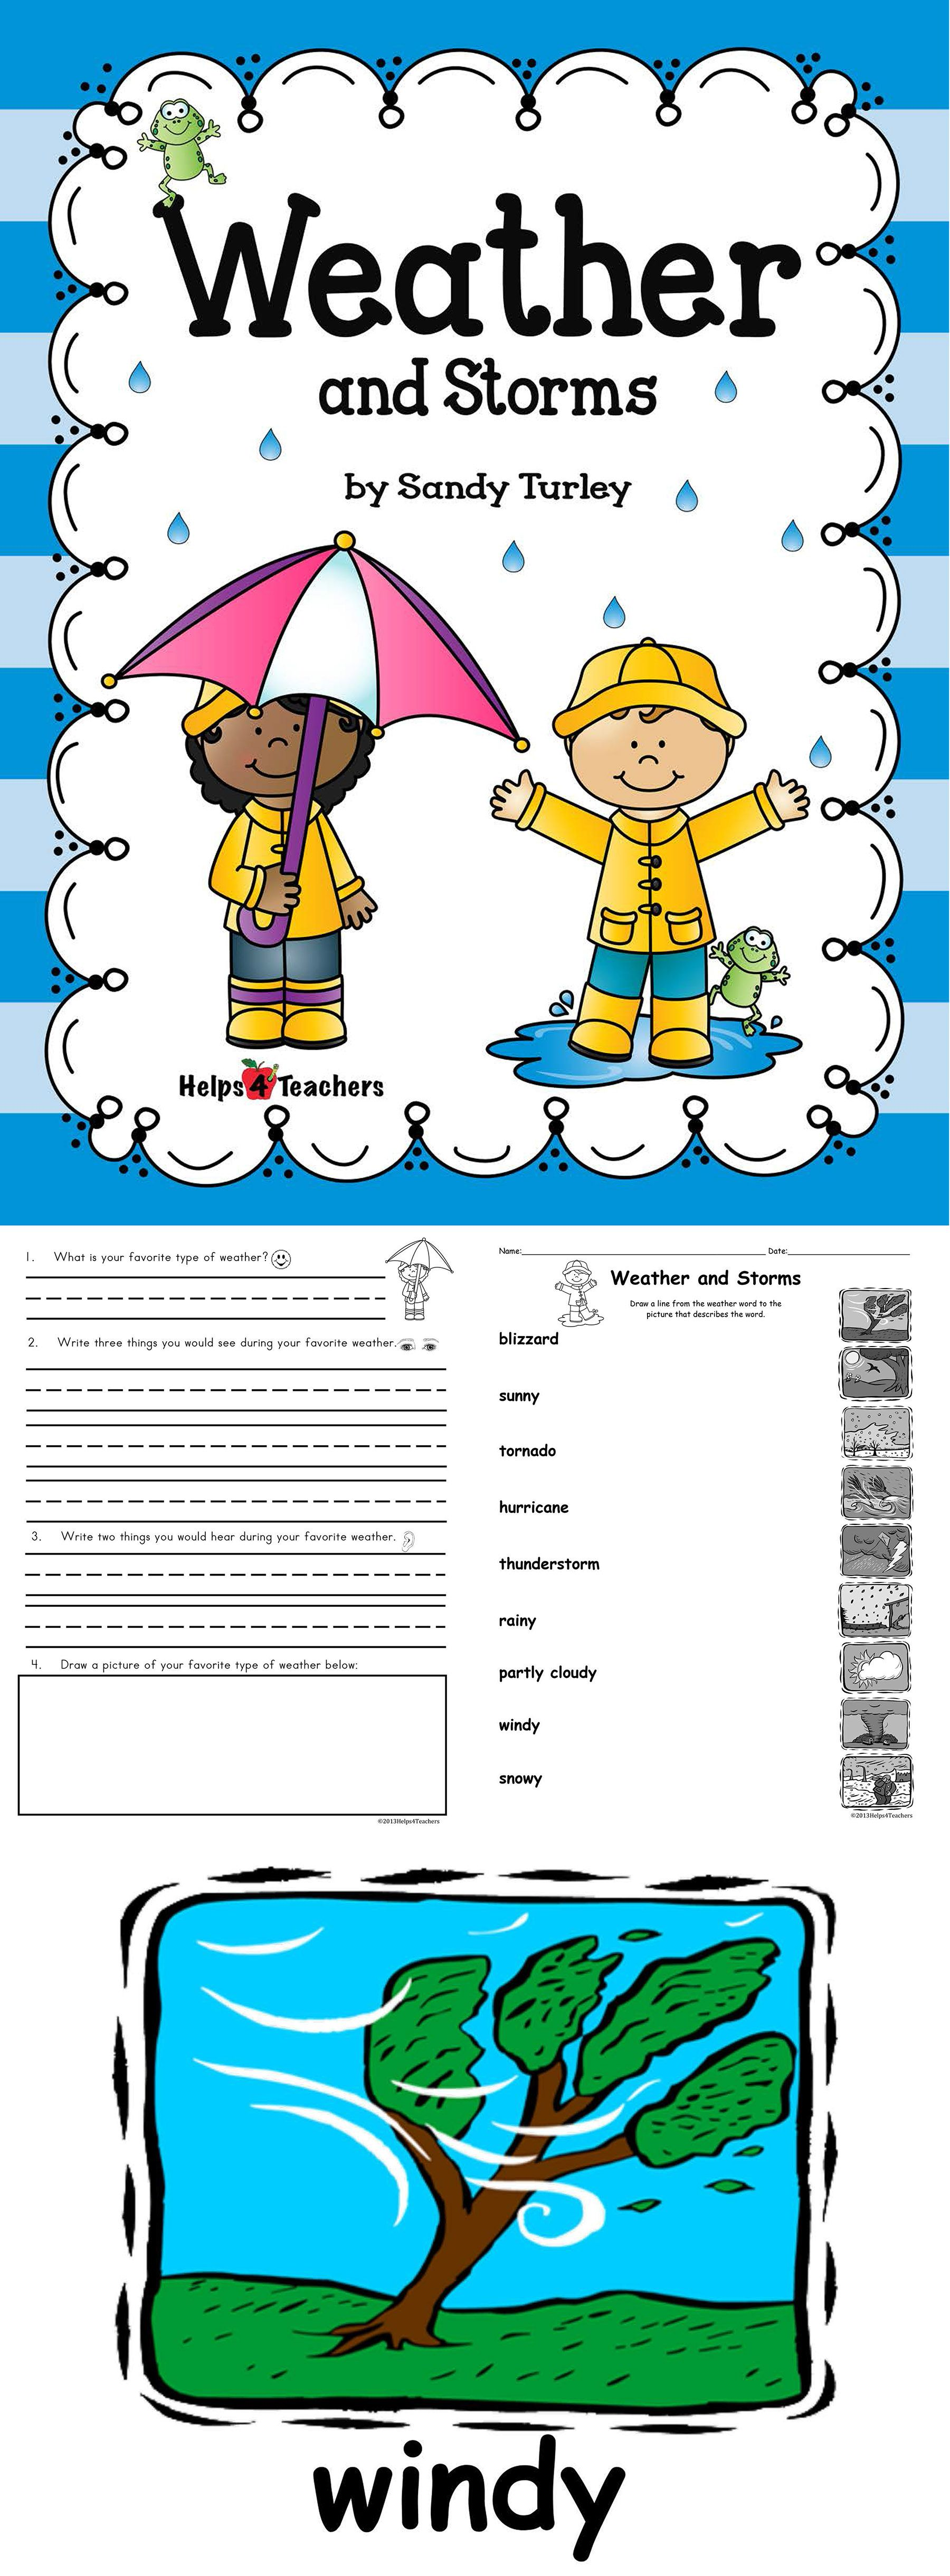 This Packet Is 20 Pages And Includes 9 Colored Pictures Of Different Types Of Weather And Storms 9 Weather Words First Grade Science Kindergarten Science [ 4882 x 1800 Pixel ]